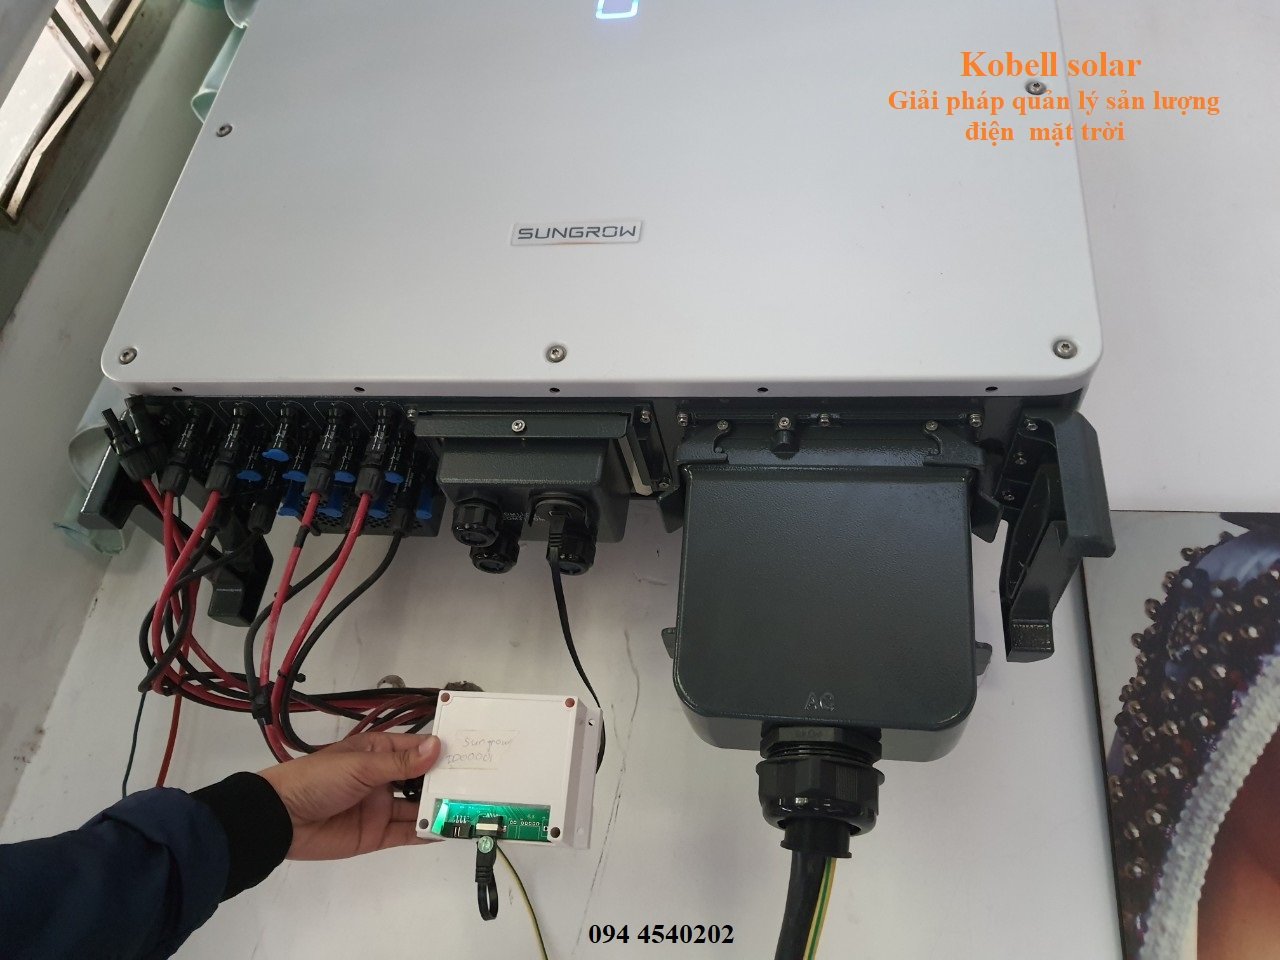 wifi phan mem quan ly theo doi dien mat troi inverter sungrow | GPsolar